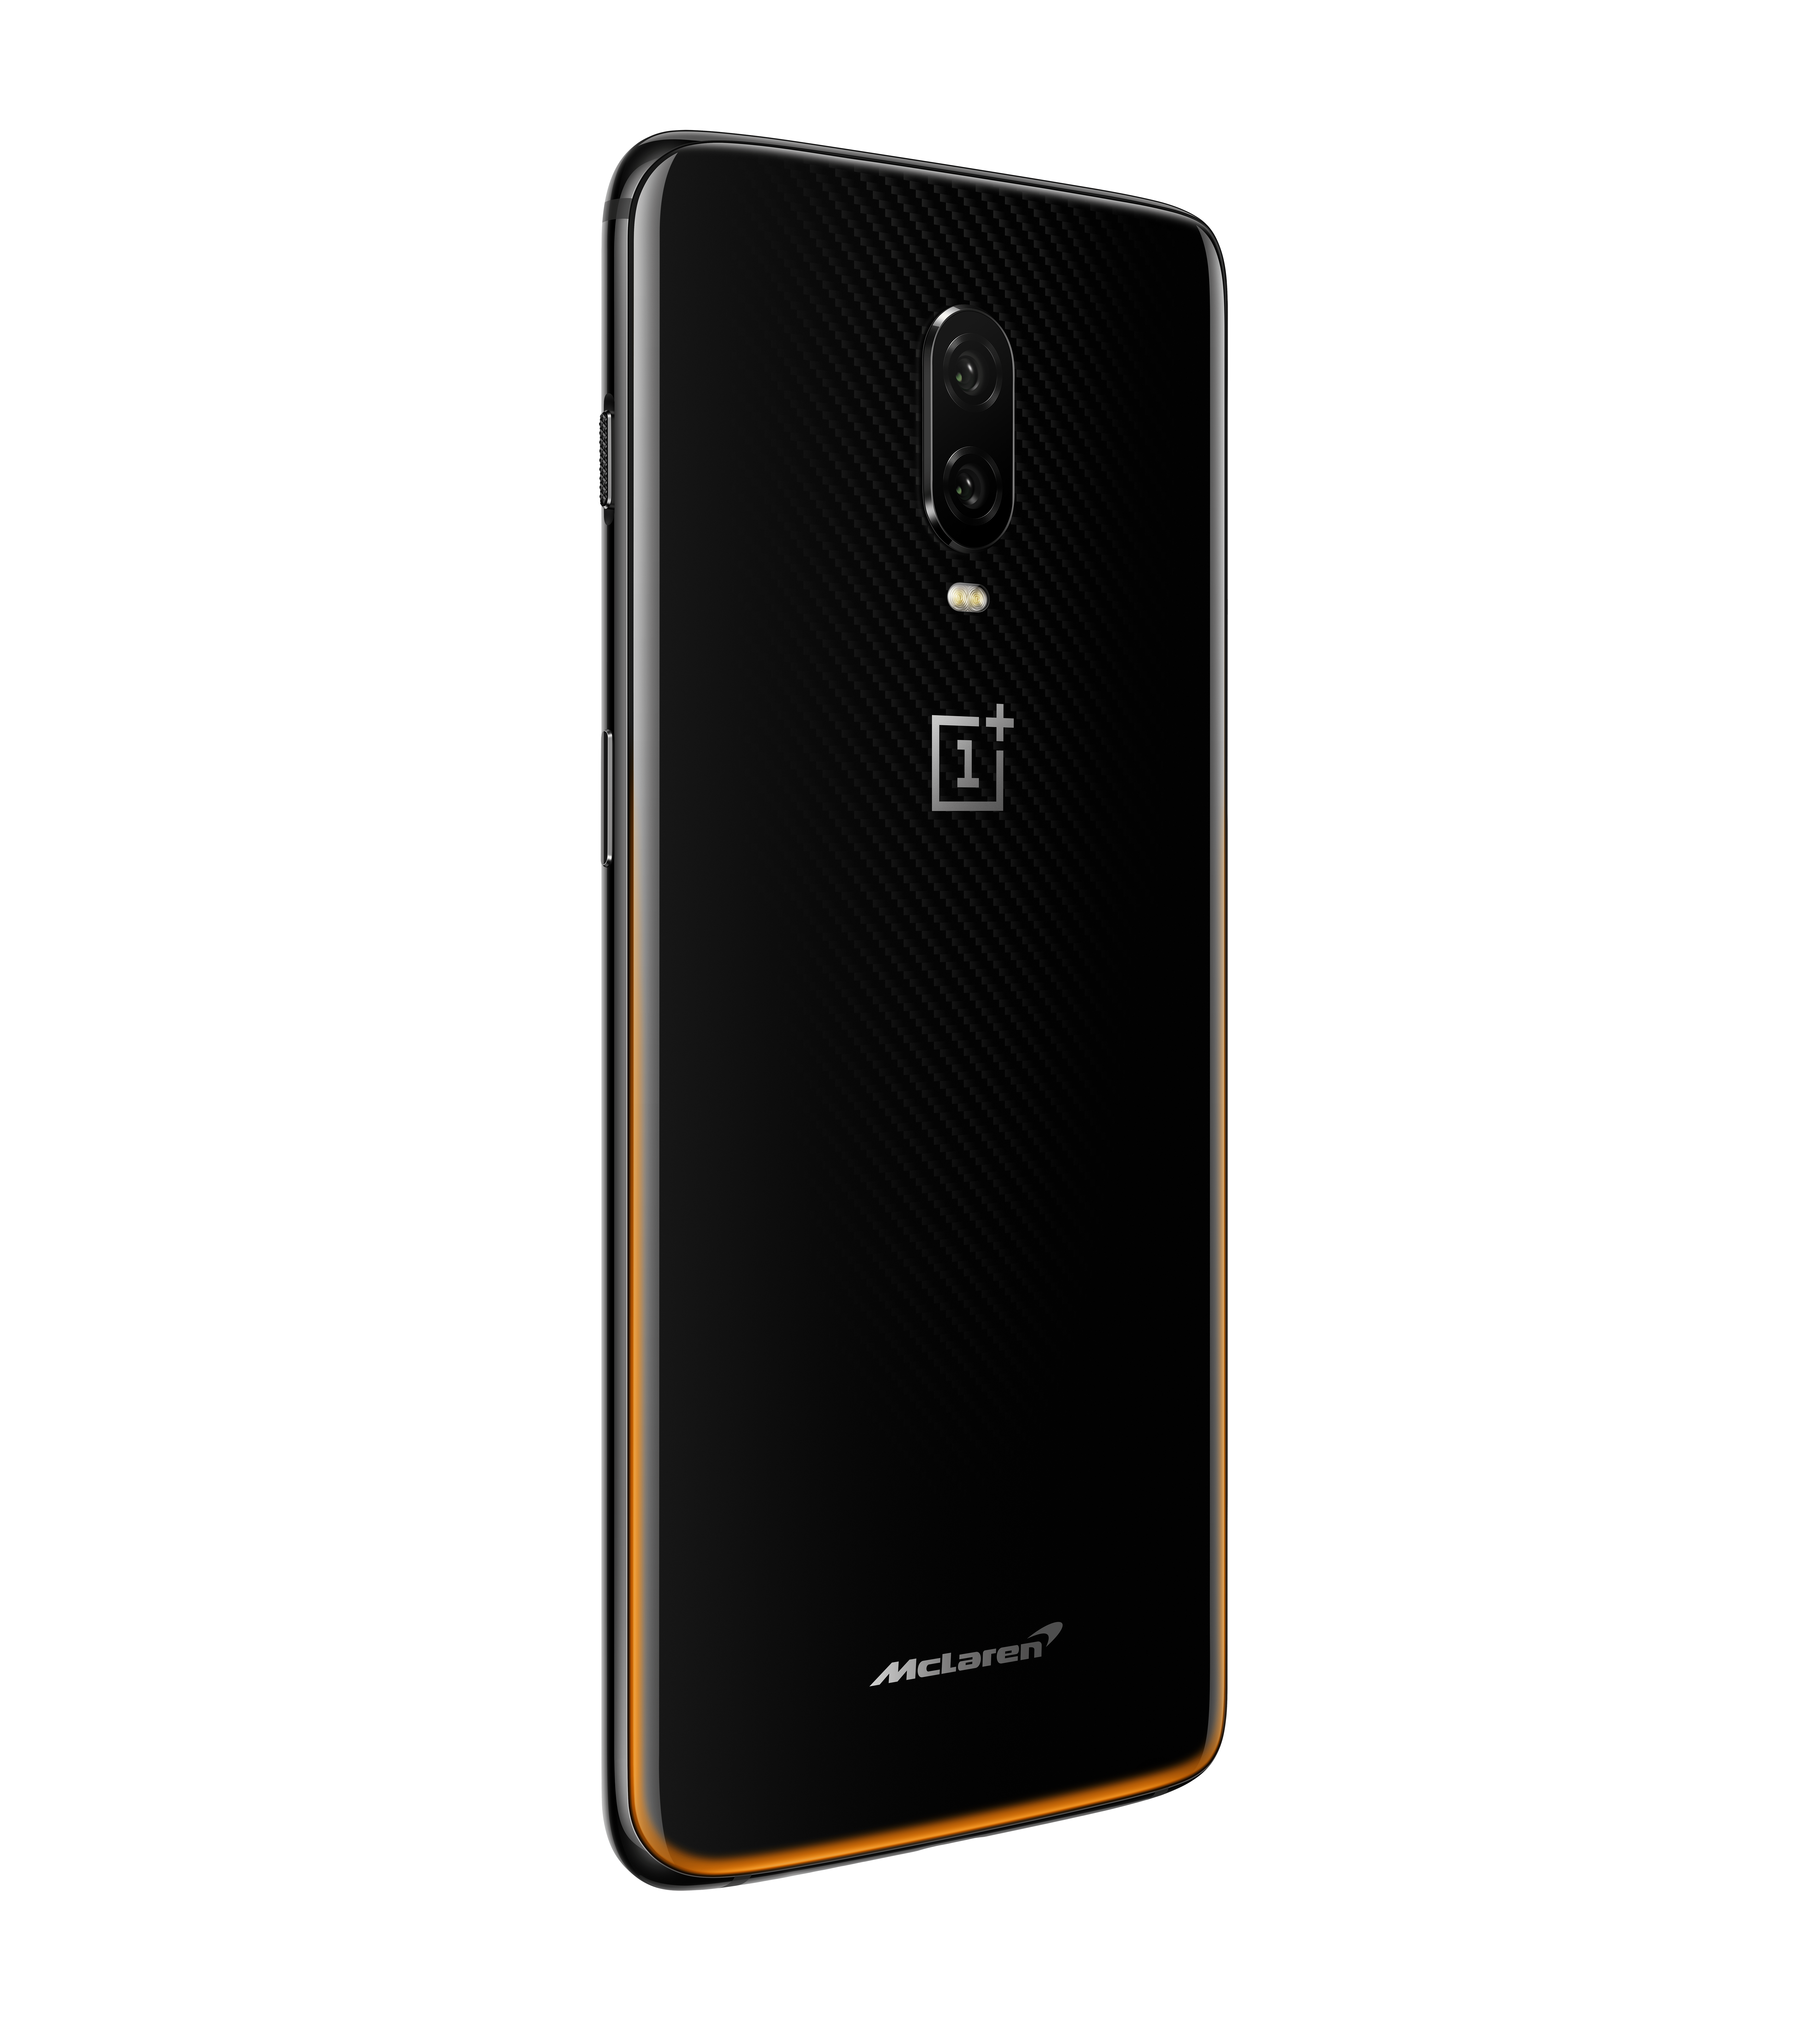 Oneplus 6t Mclaren Edition Could Take Pole Position With: OnePlus-6T-McLaren-Edition (1)